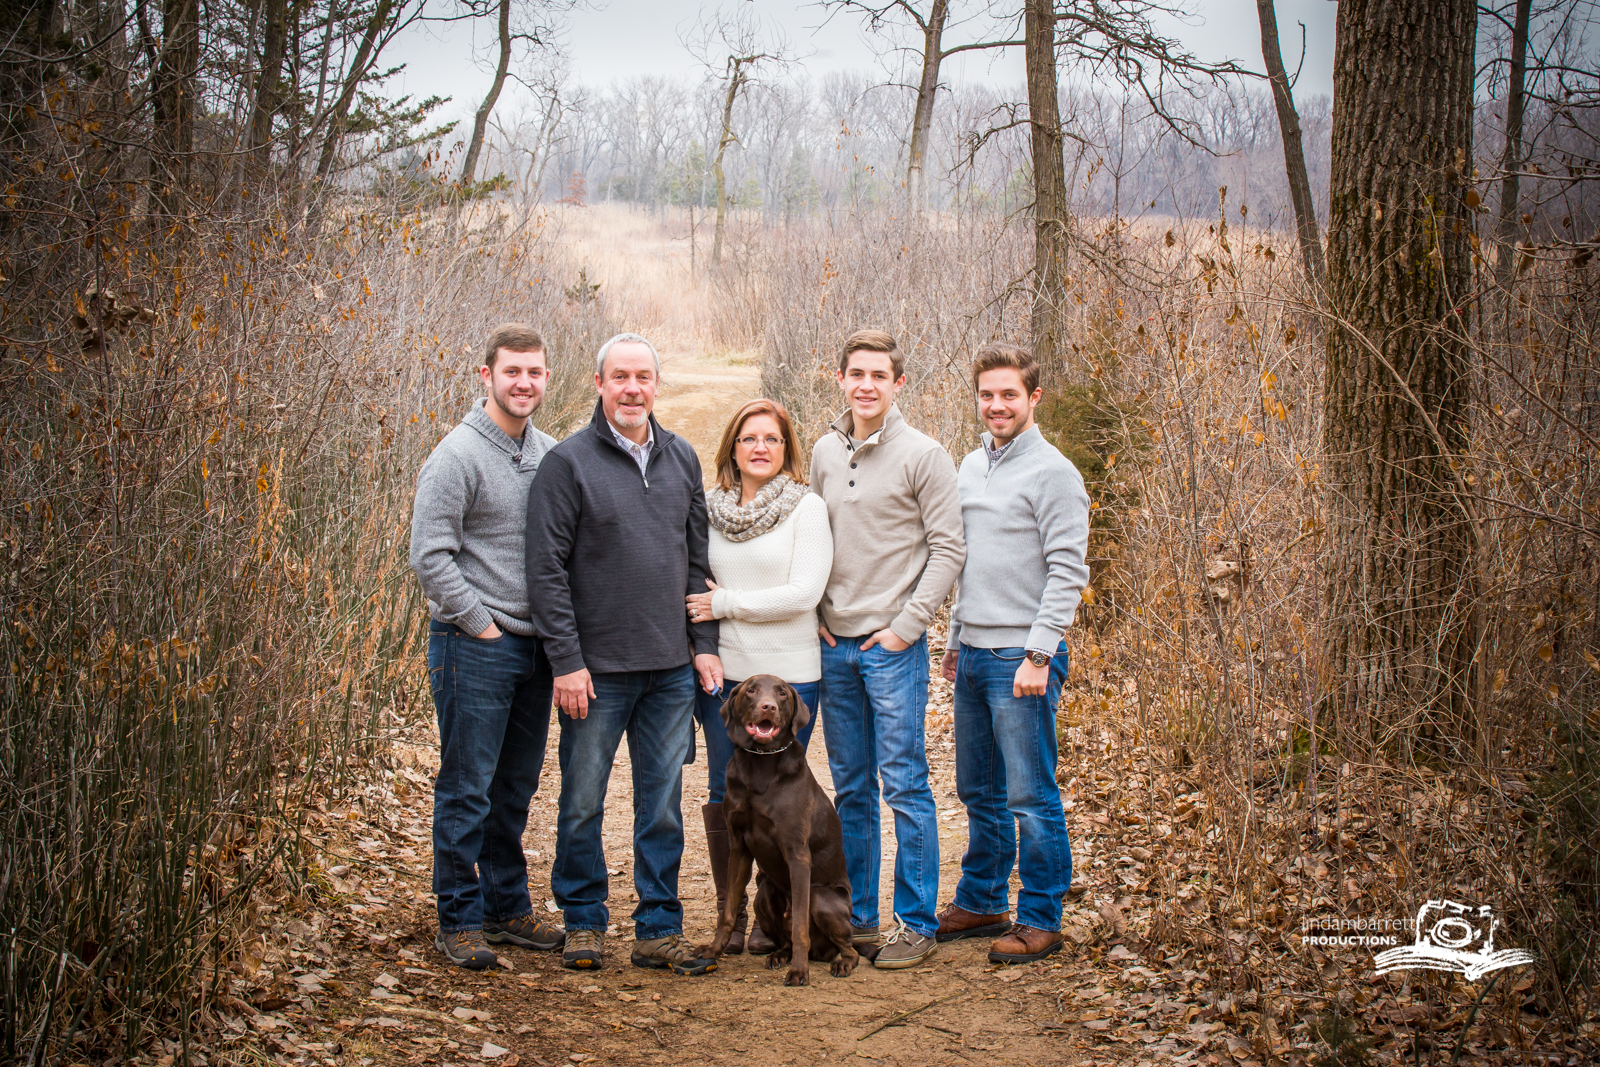 Family outdoor portrait